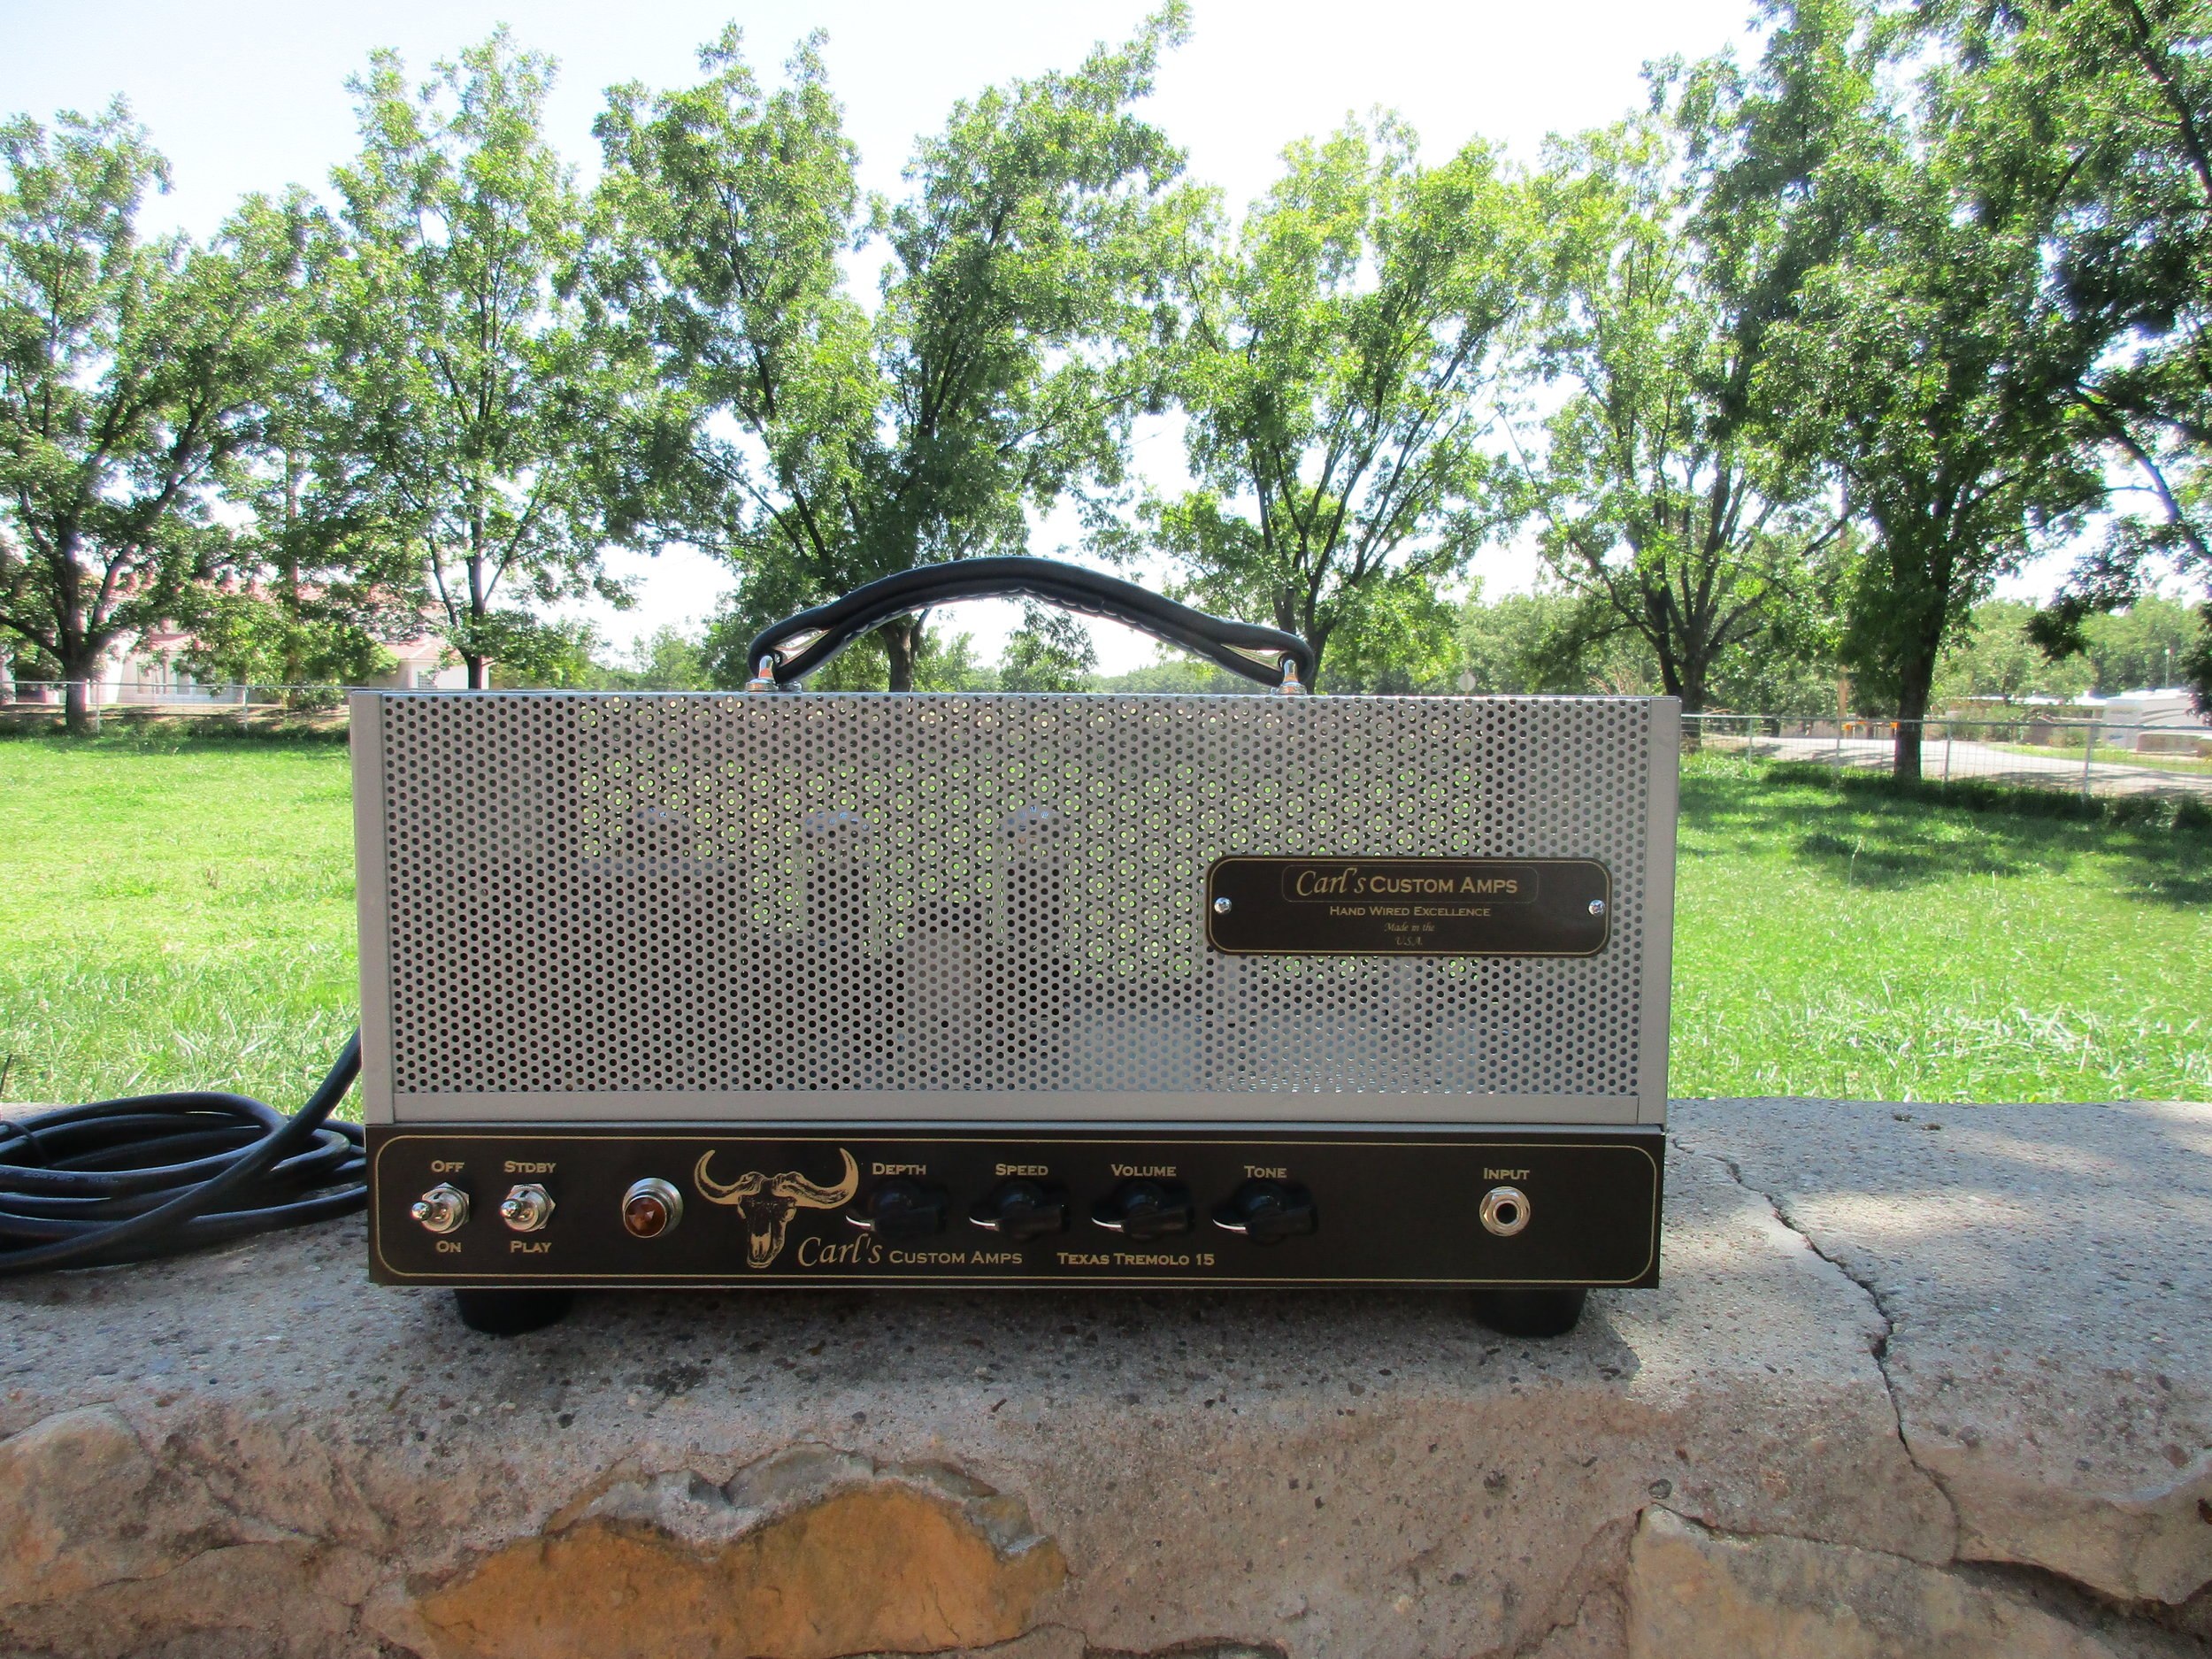 The Texas Tremolo and Brown Face Princeton style head!